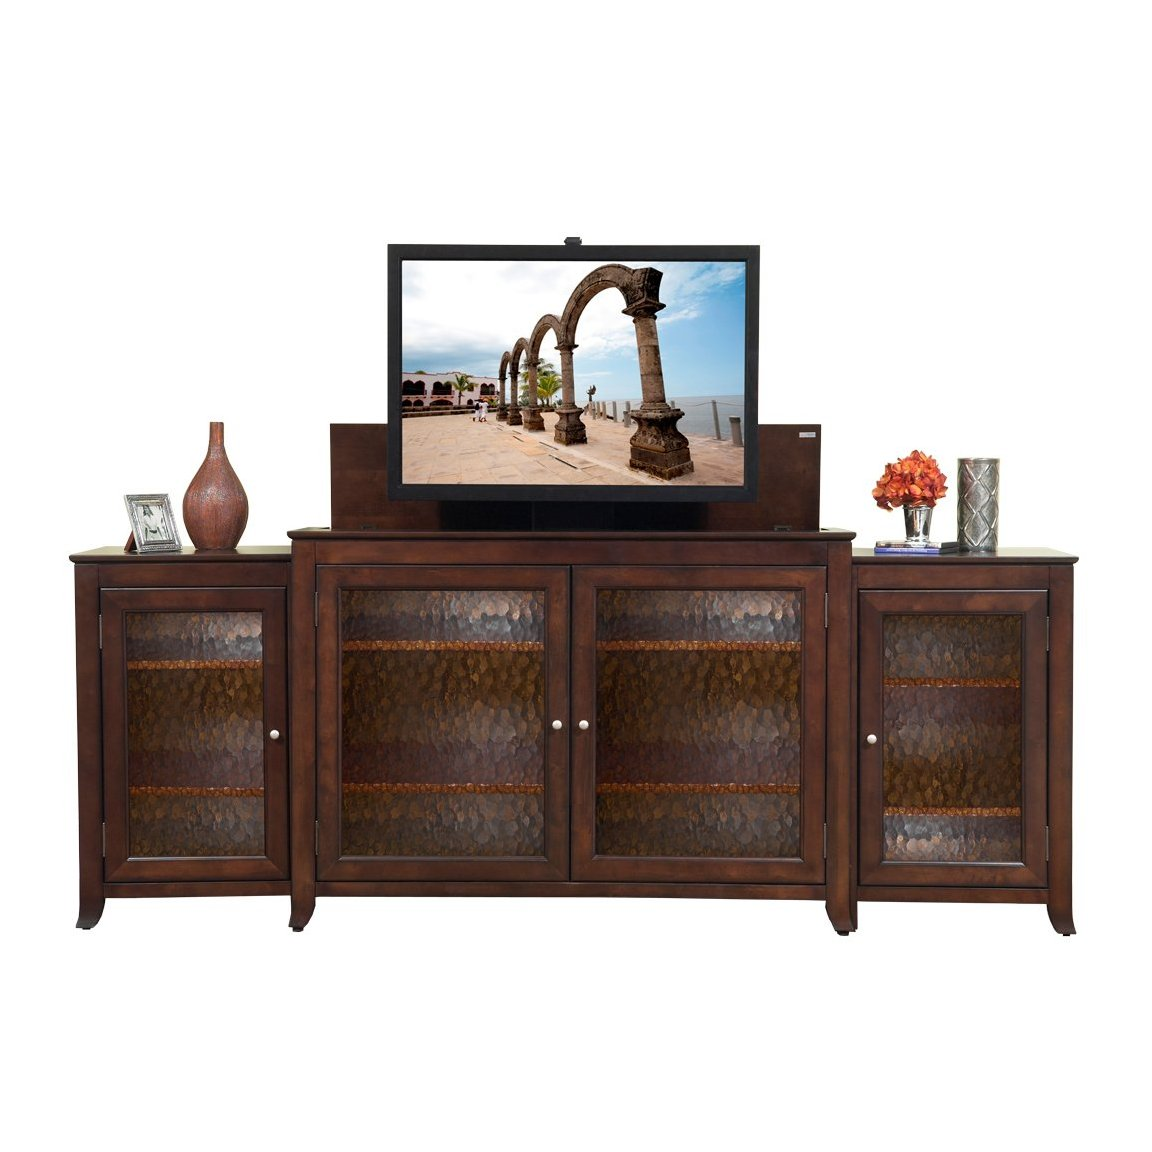 Pop Up Tv Cabinet Guide For Cheap Pop Up Tv Cabinet Online